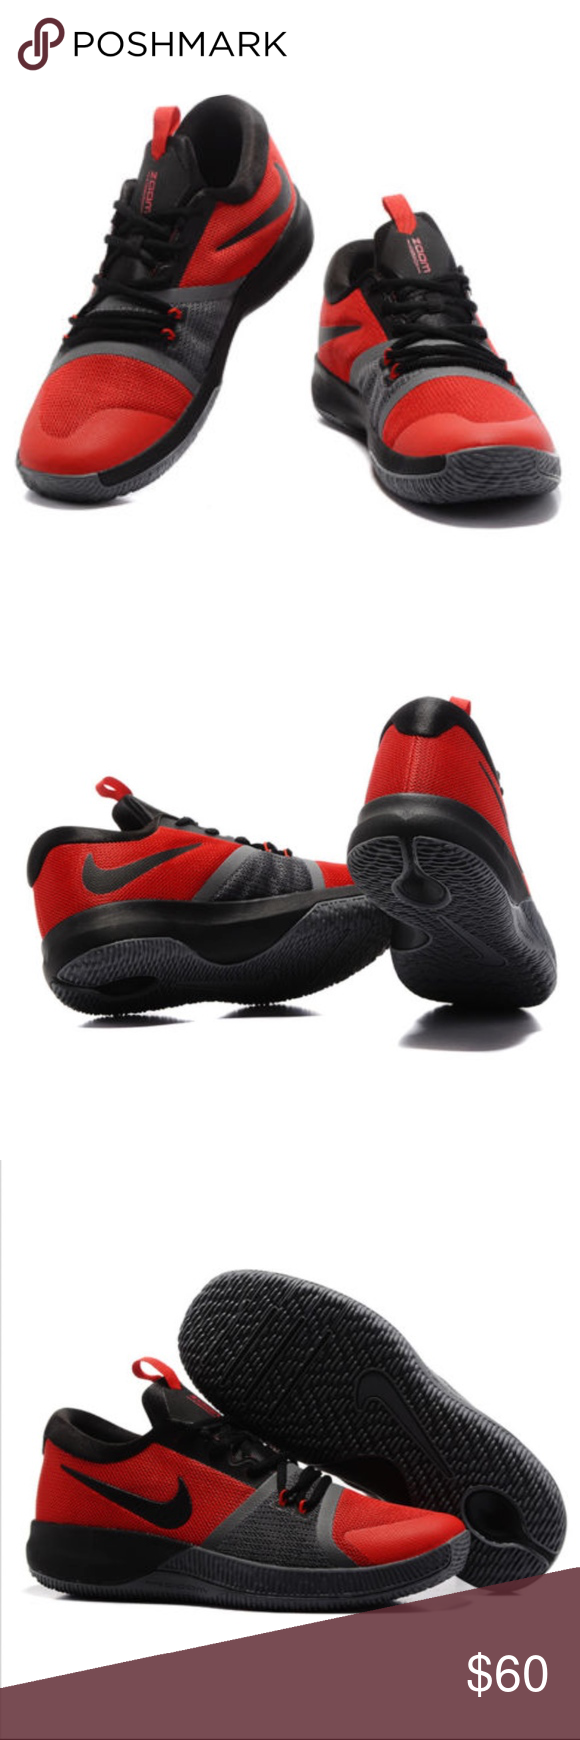 Nike ZOOM ASSERSION Men's Basketball Shoes